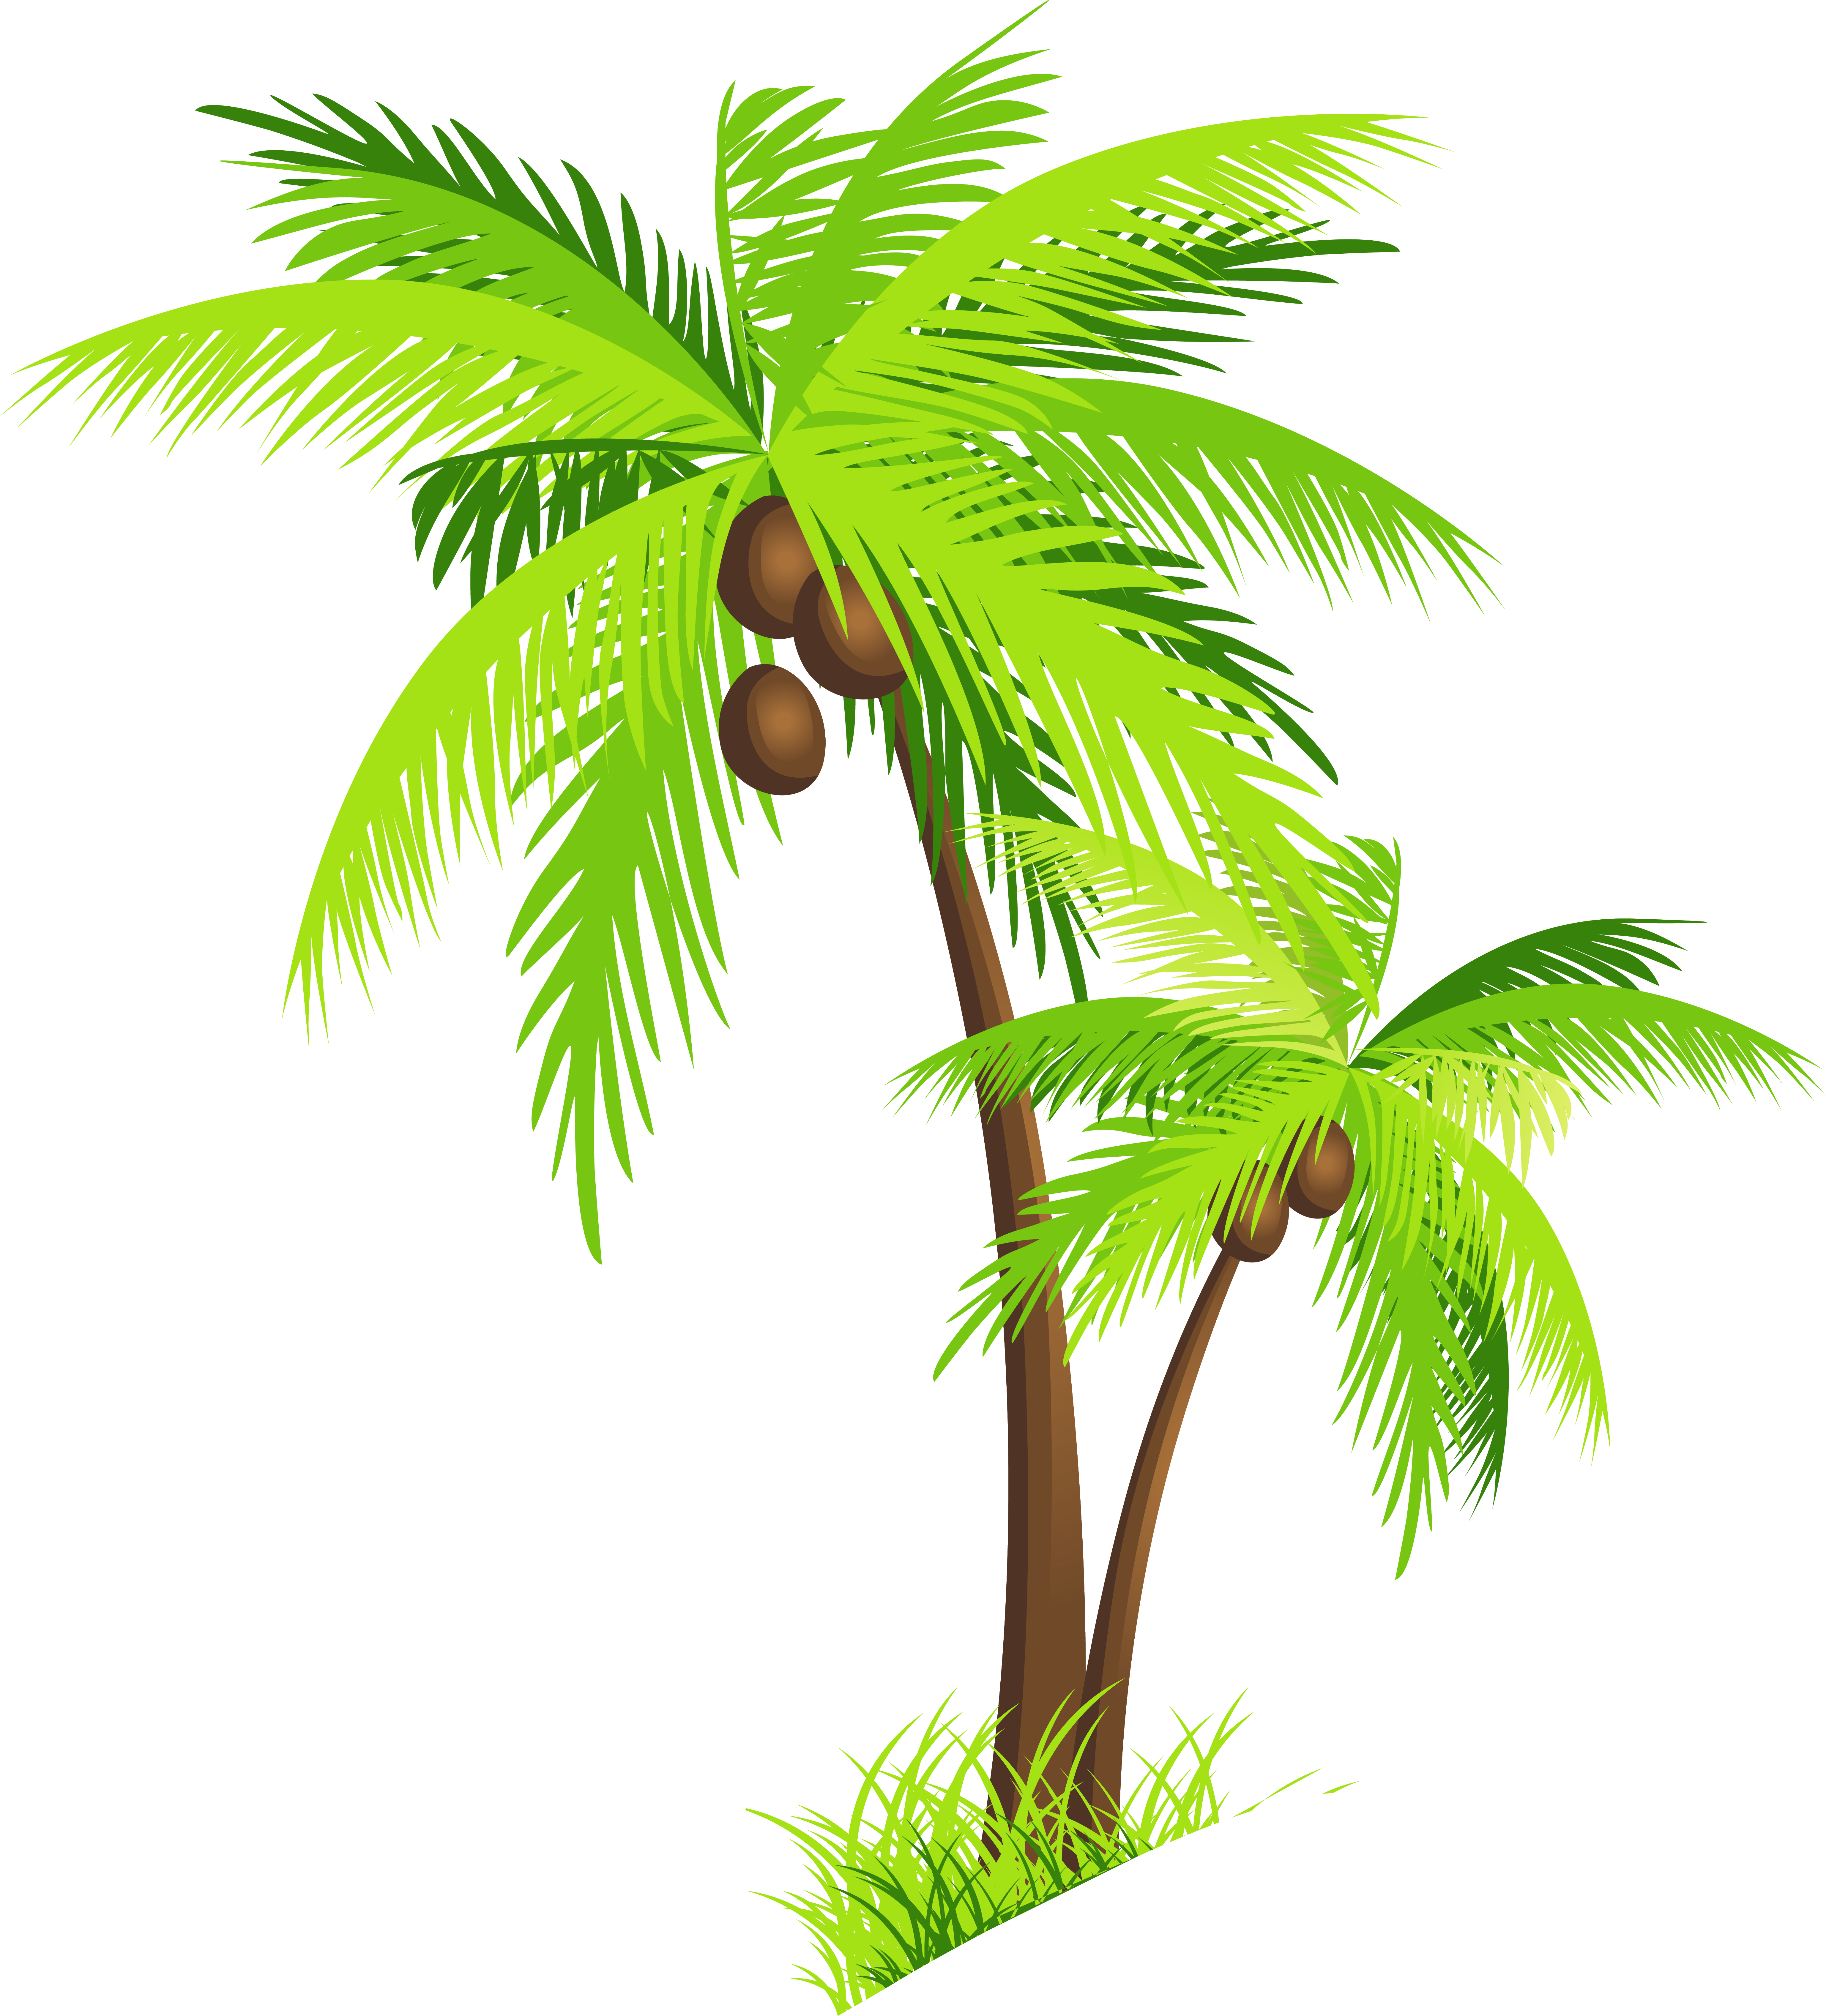 Coconut Tree PNG Images Transparent Free Download | PNGMart.com